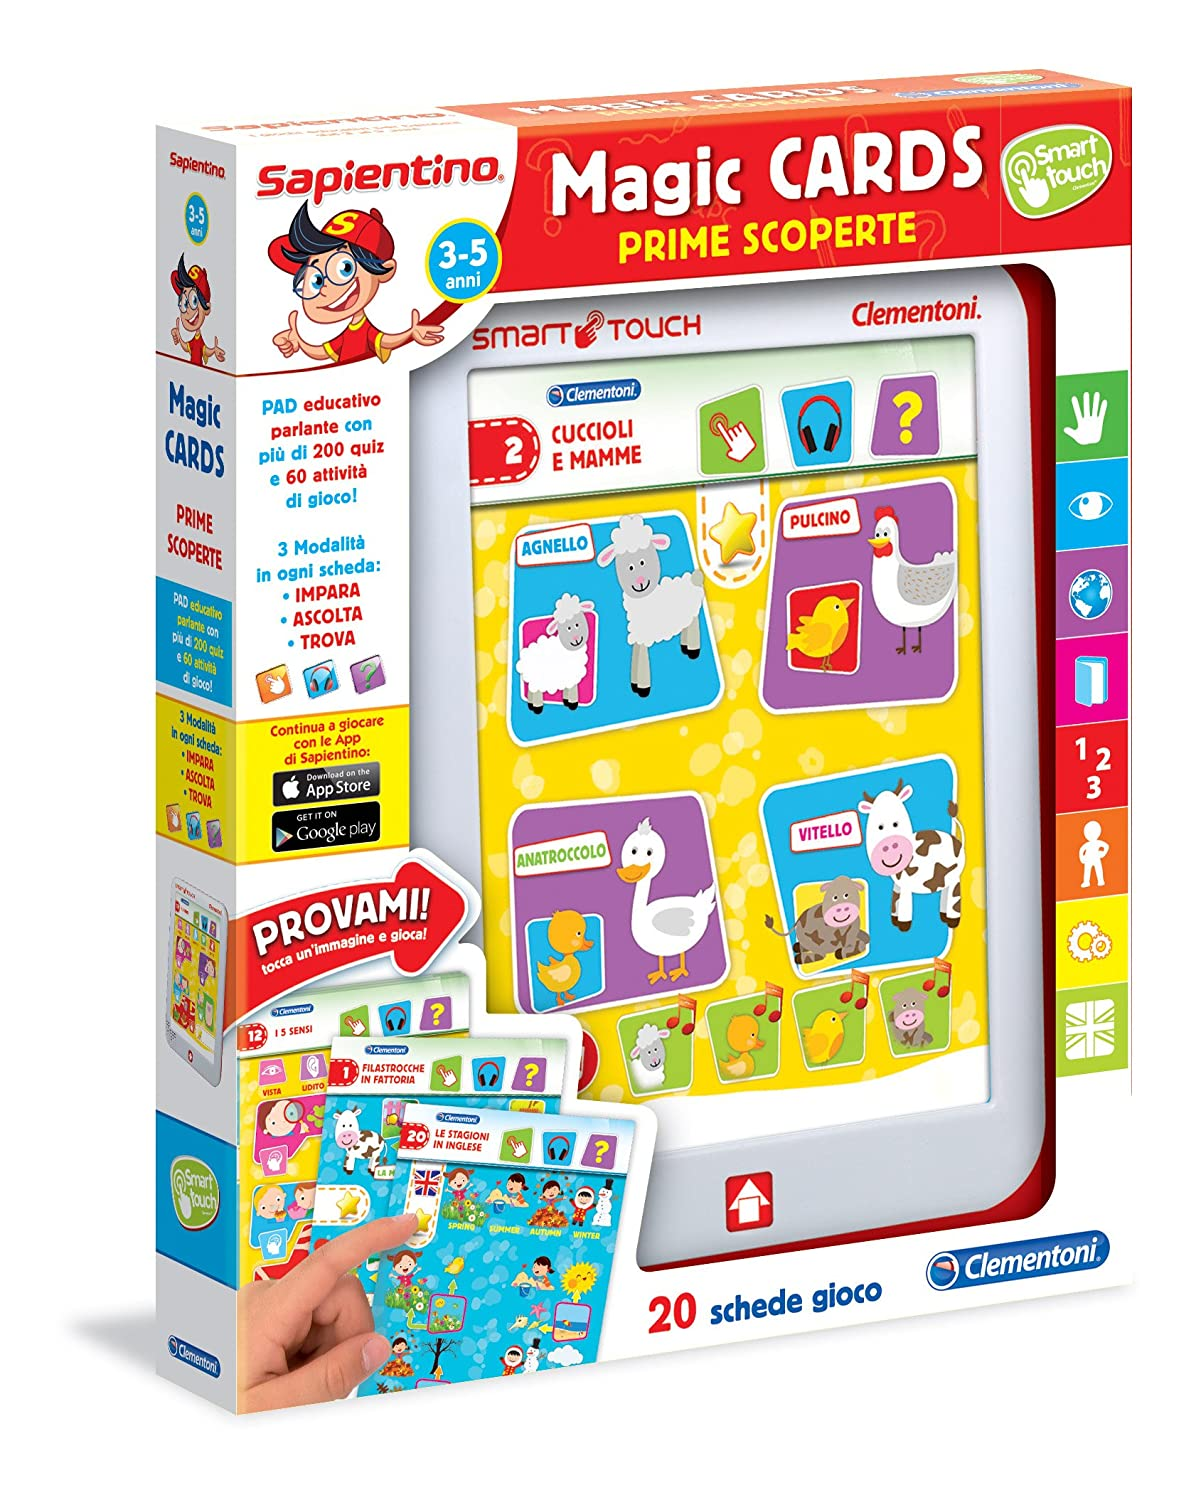 Sapientino Clementoni 13275 Magic Cards Prime Scoperte, 3-5 Anni Clementoni Spa Italy